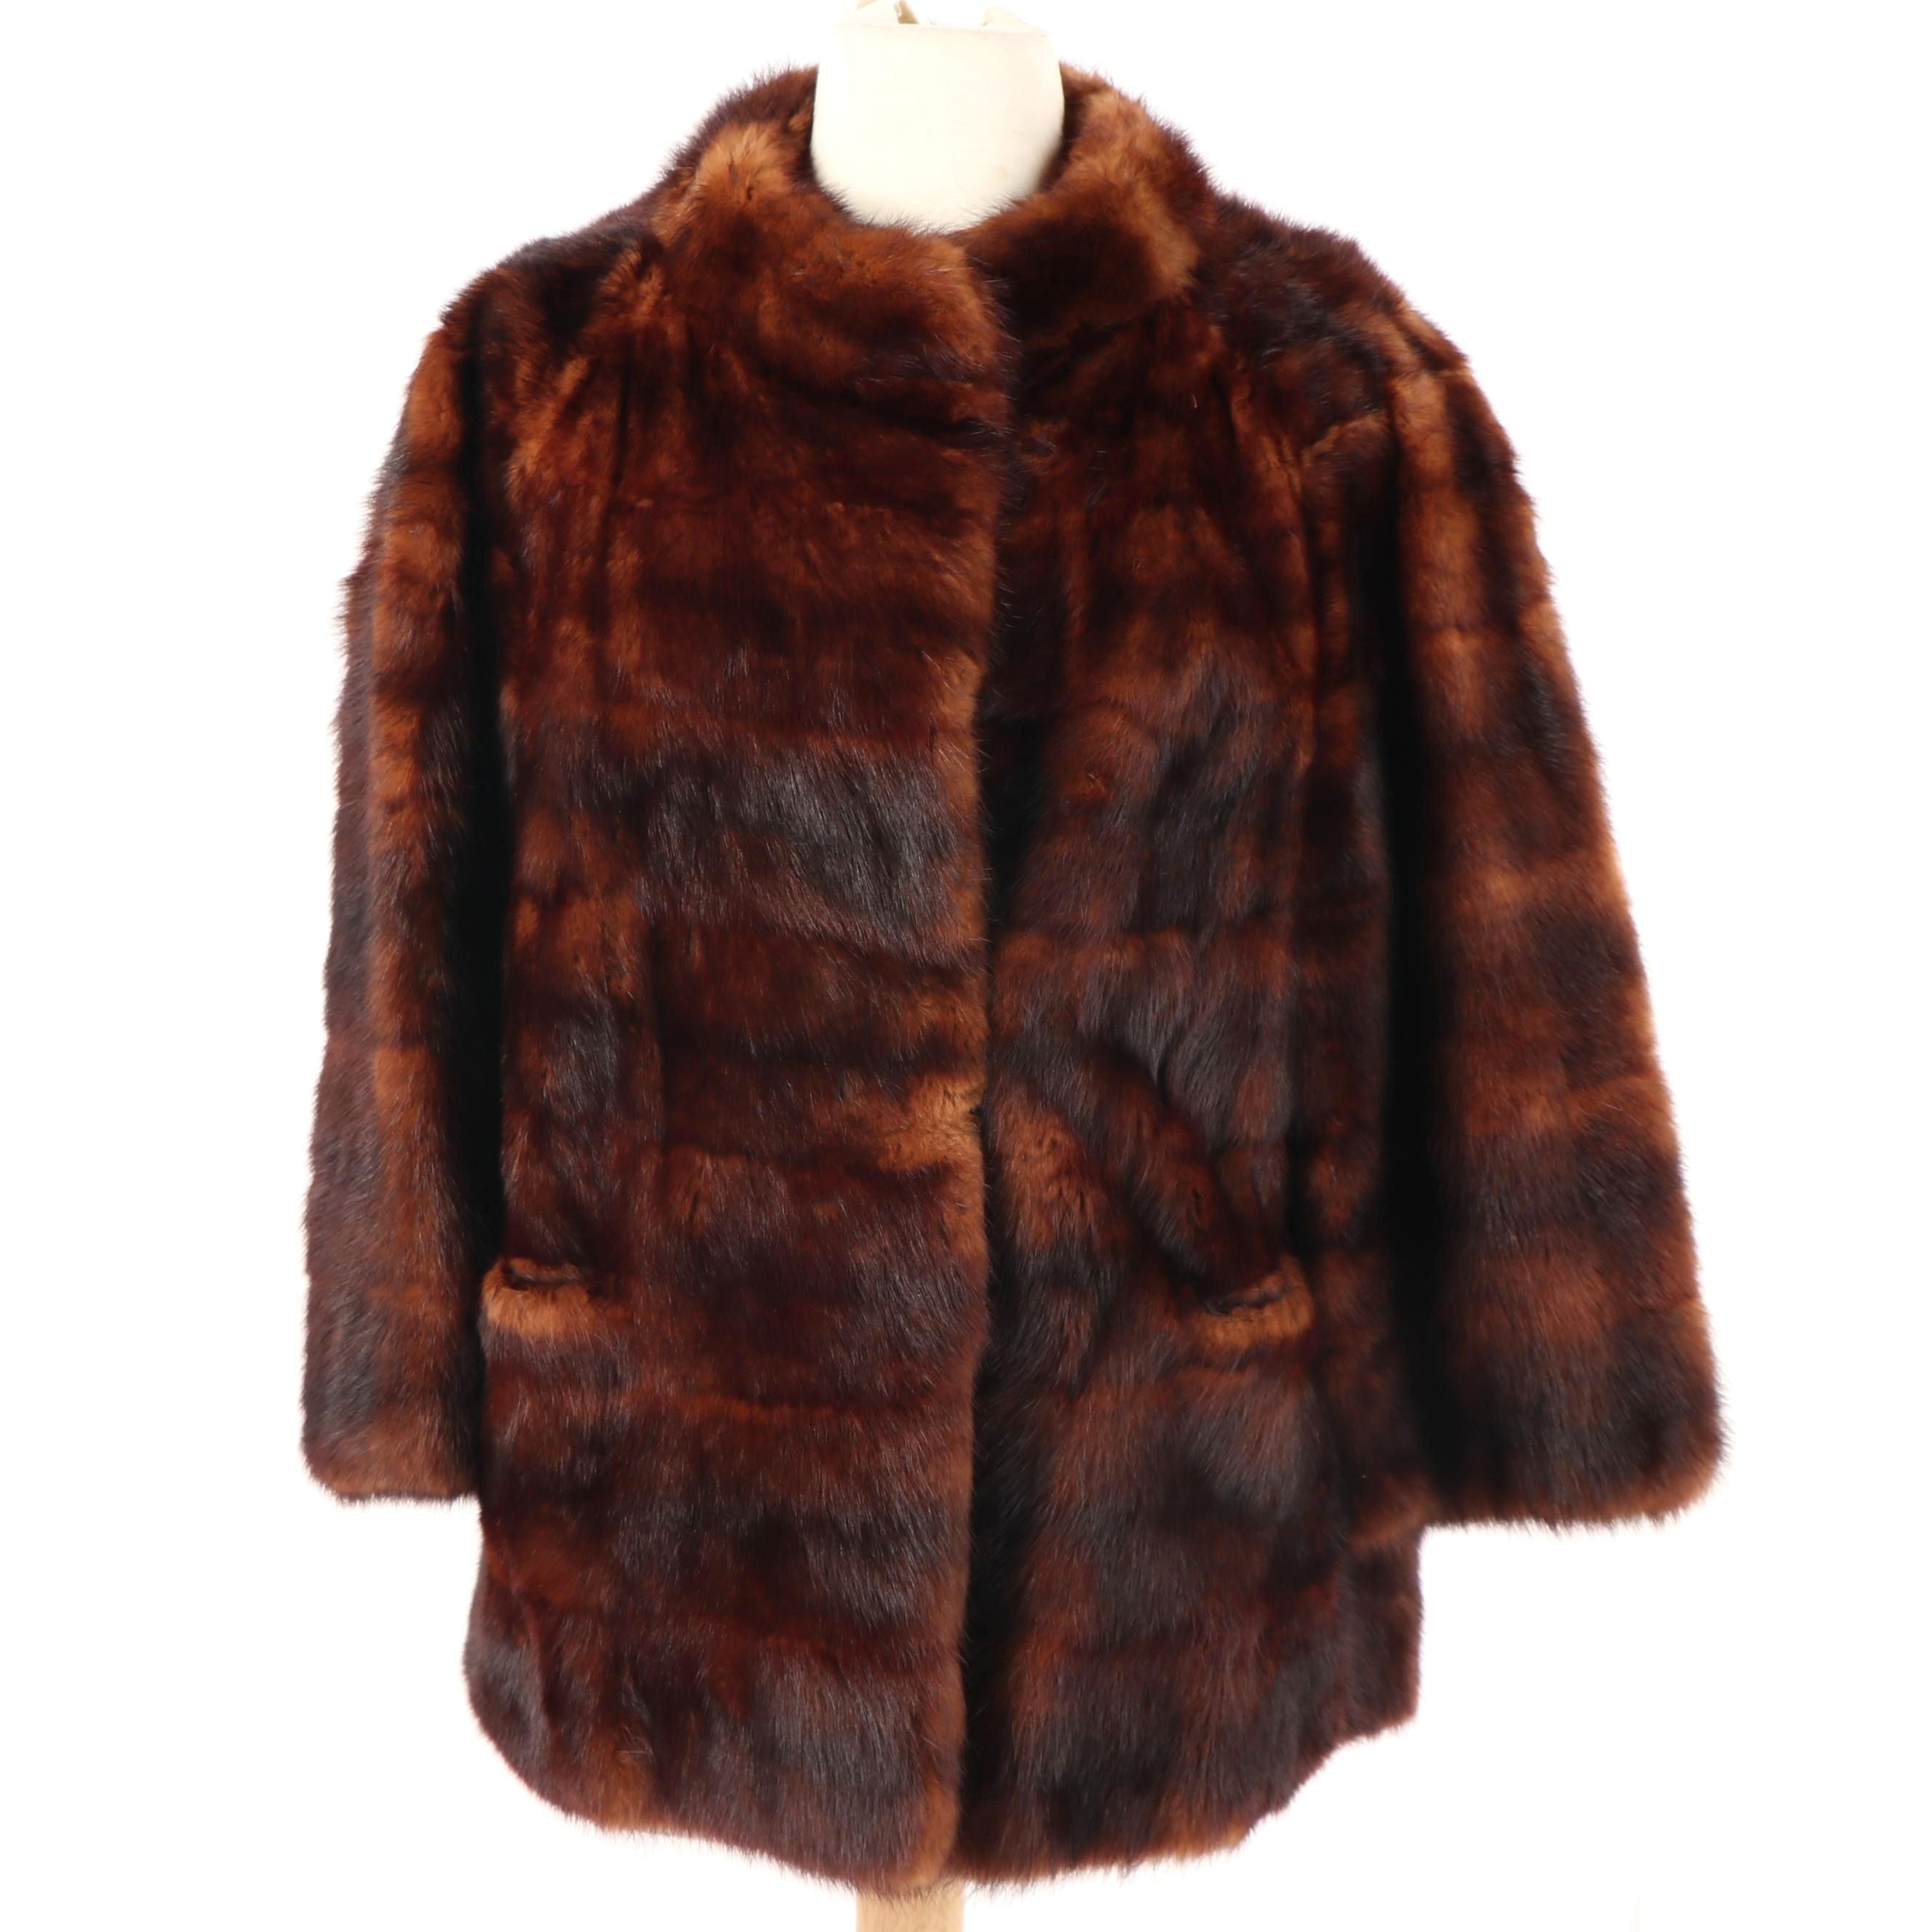 Koslow's Furs of Fort Worth Dyed Mahogany Kolinsky Fur Coat